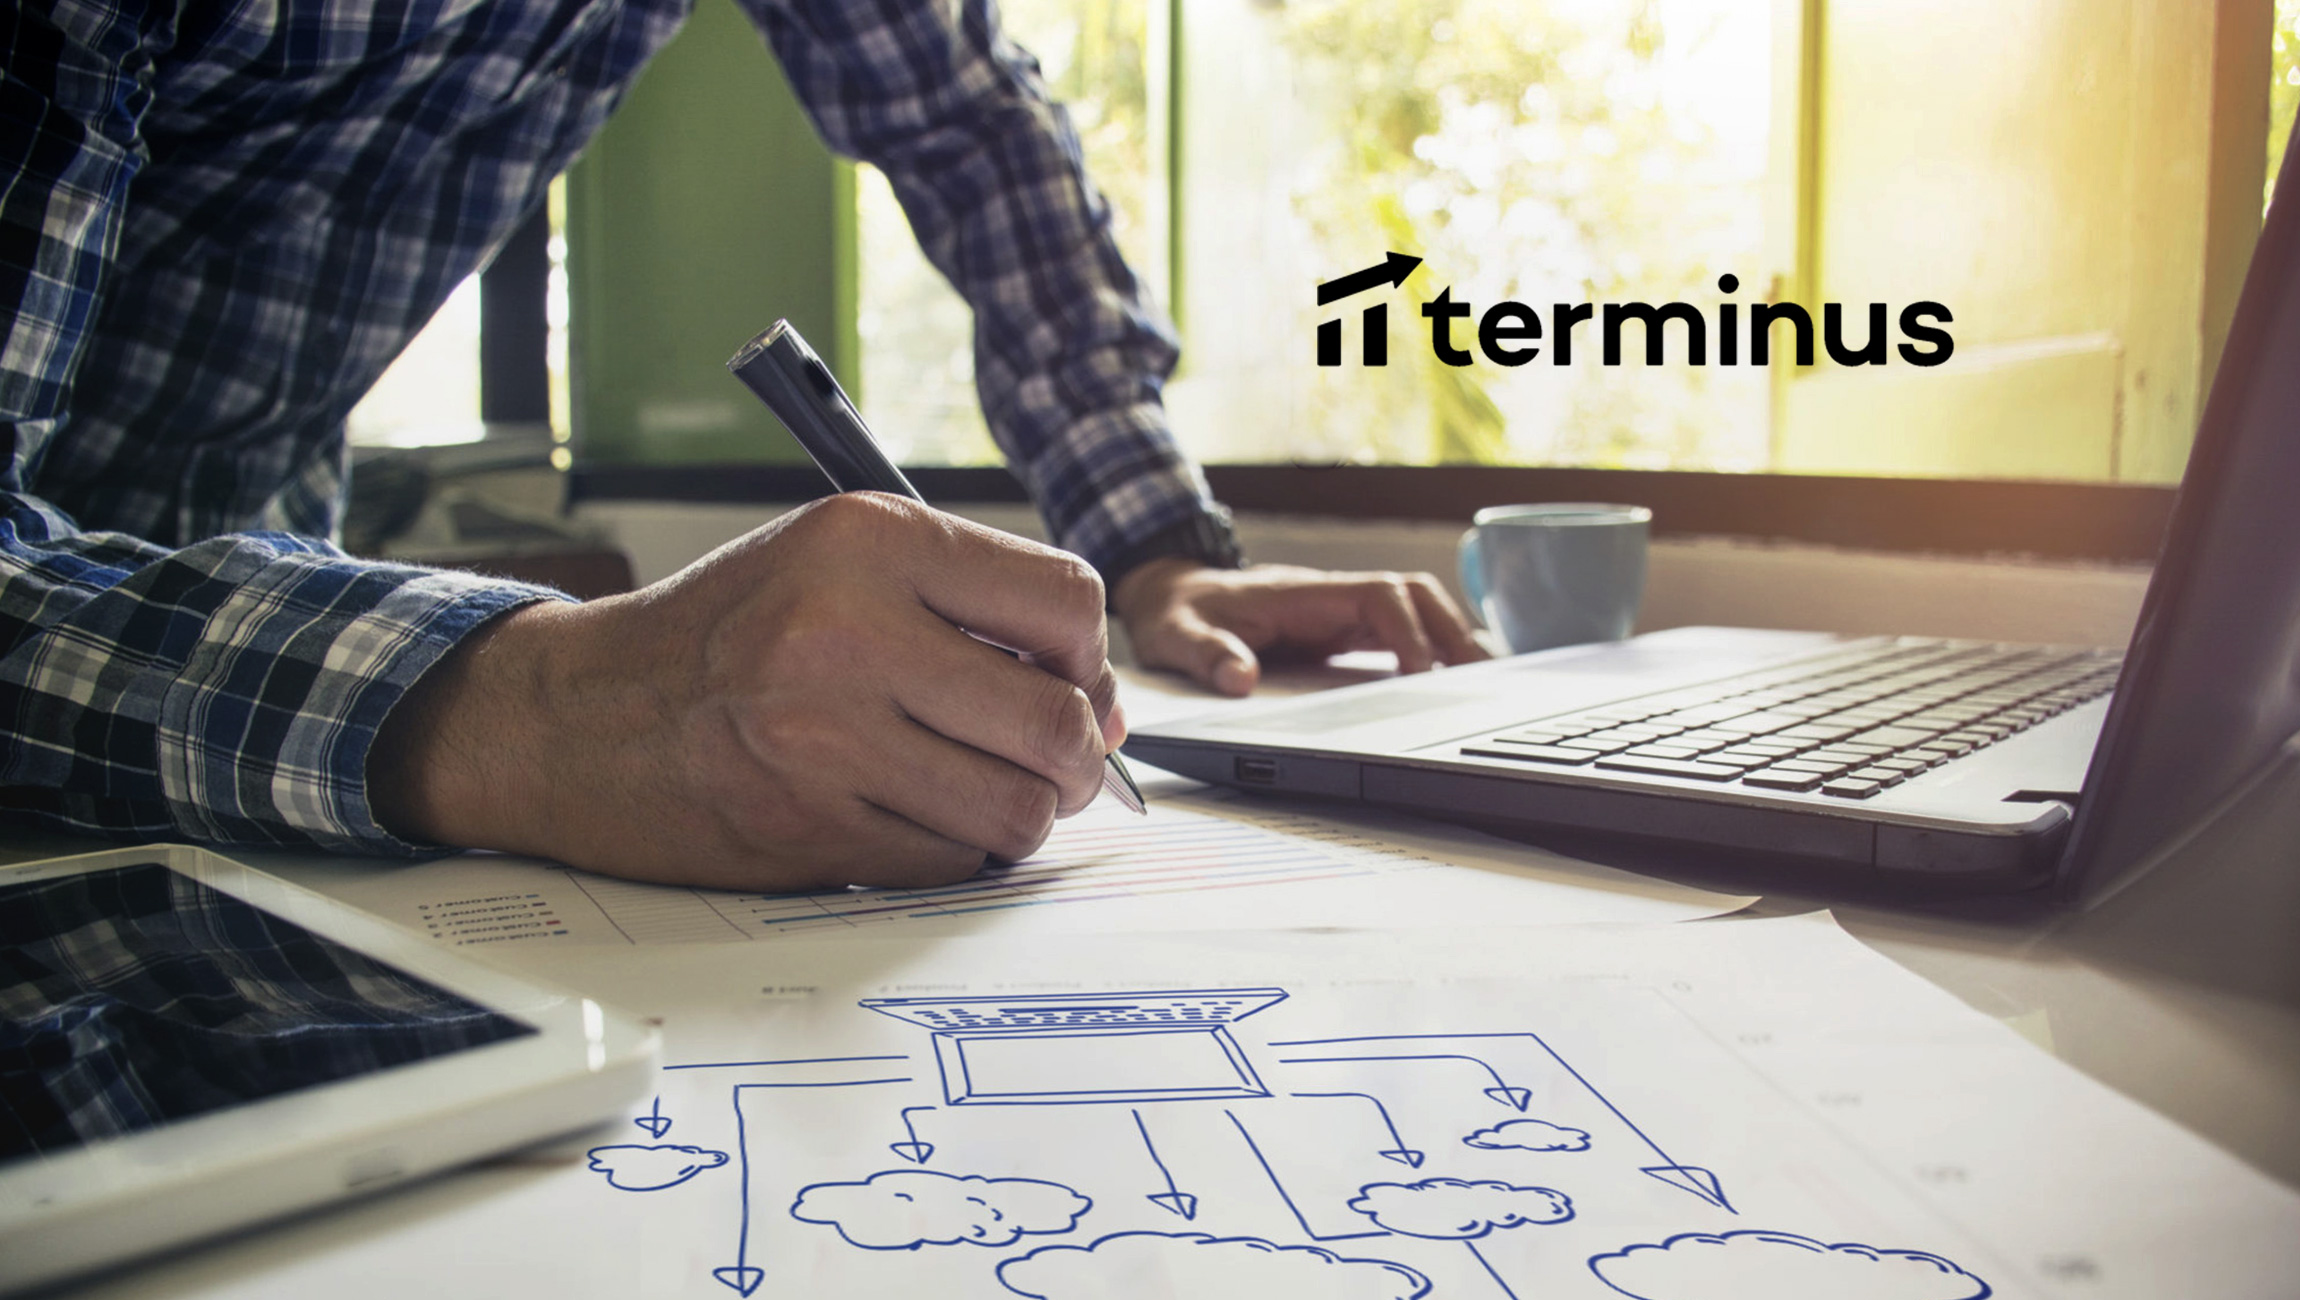 Terminus Introduces Unified Platform Enhancements That Bring Sales And Marketing Teams Closer Together